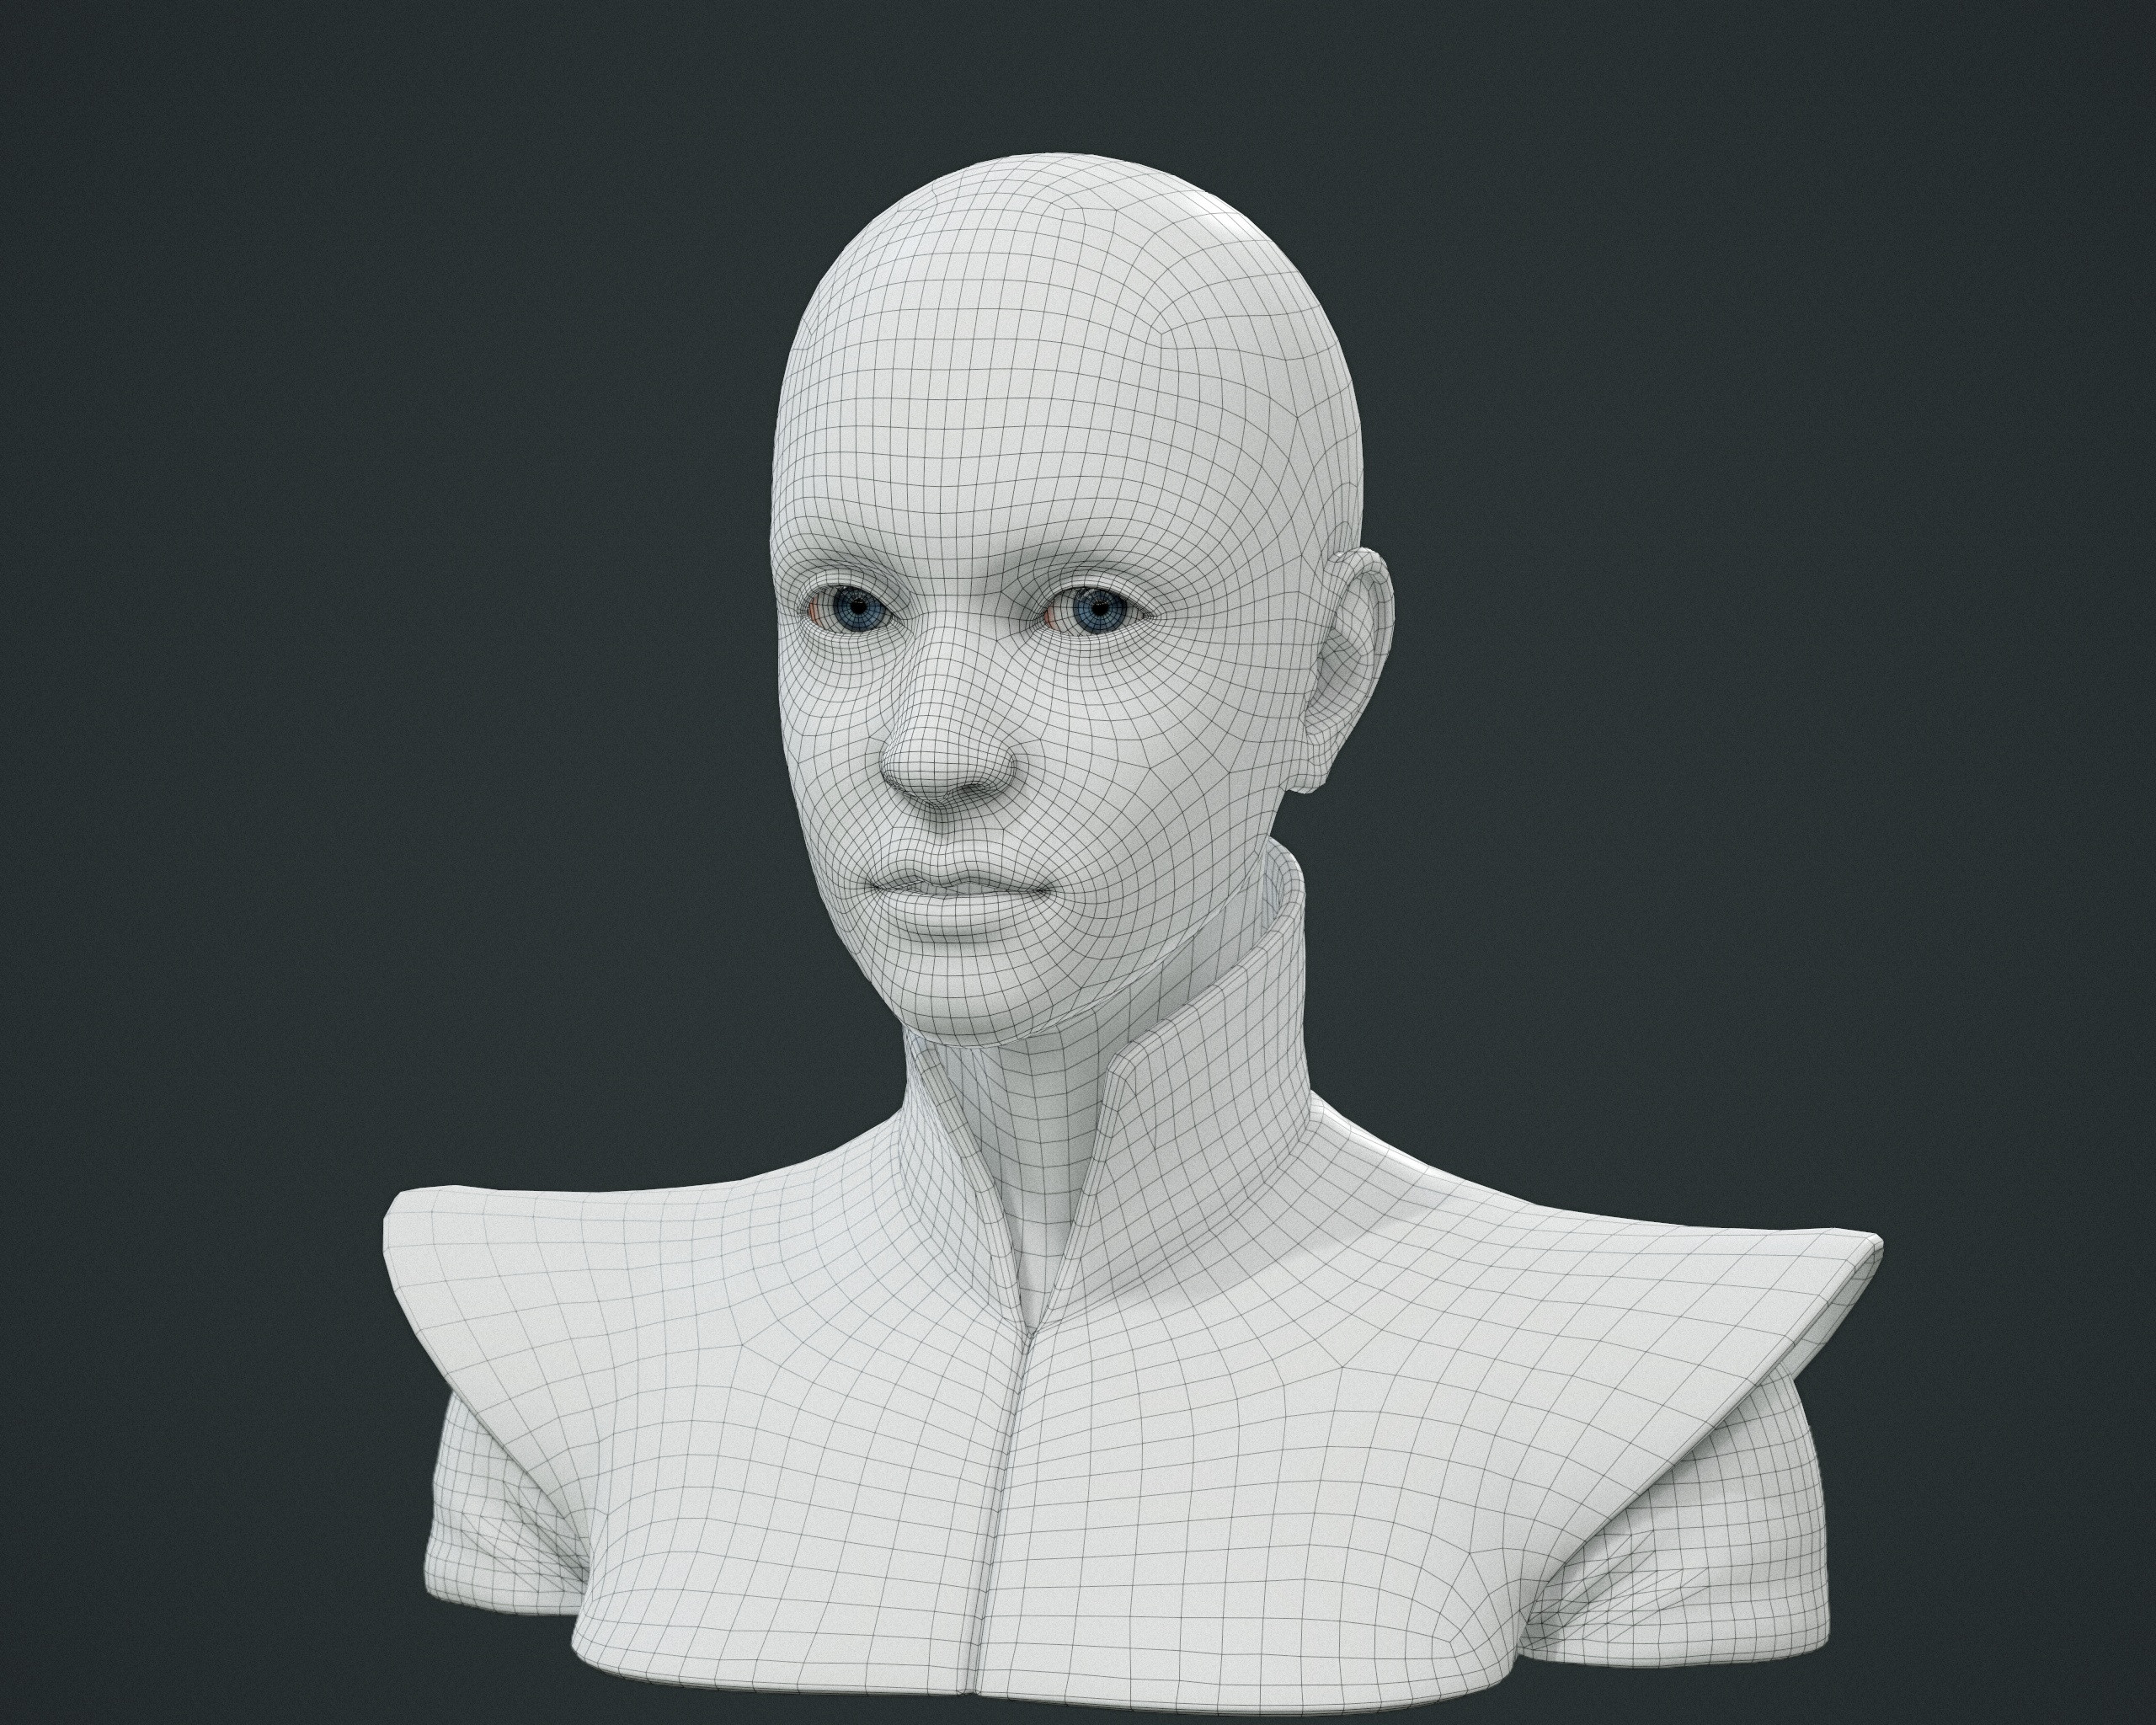 face and clothes topology